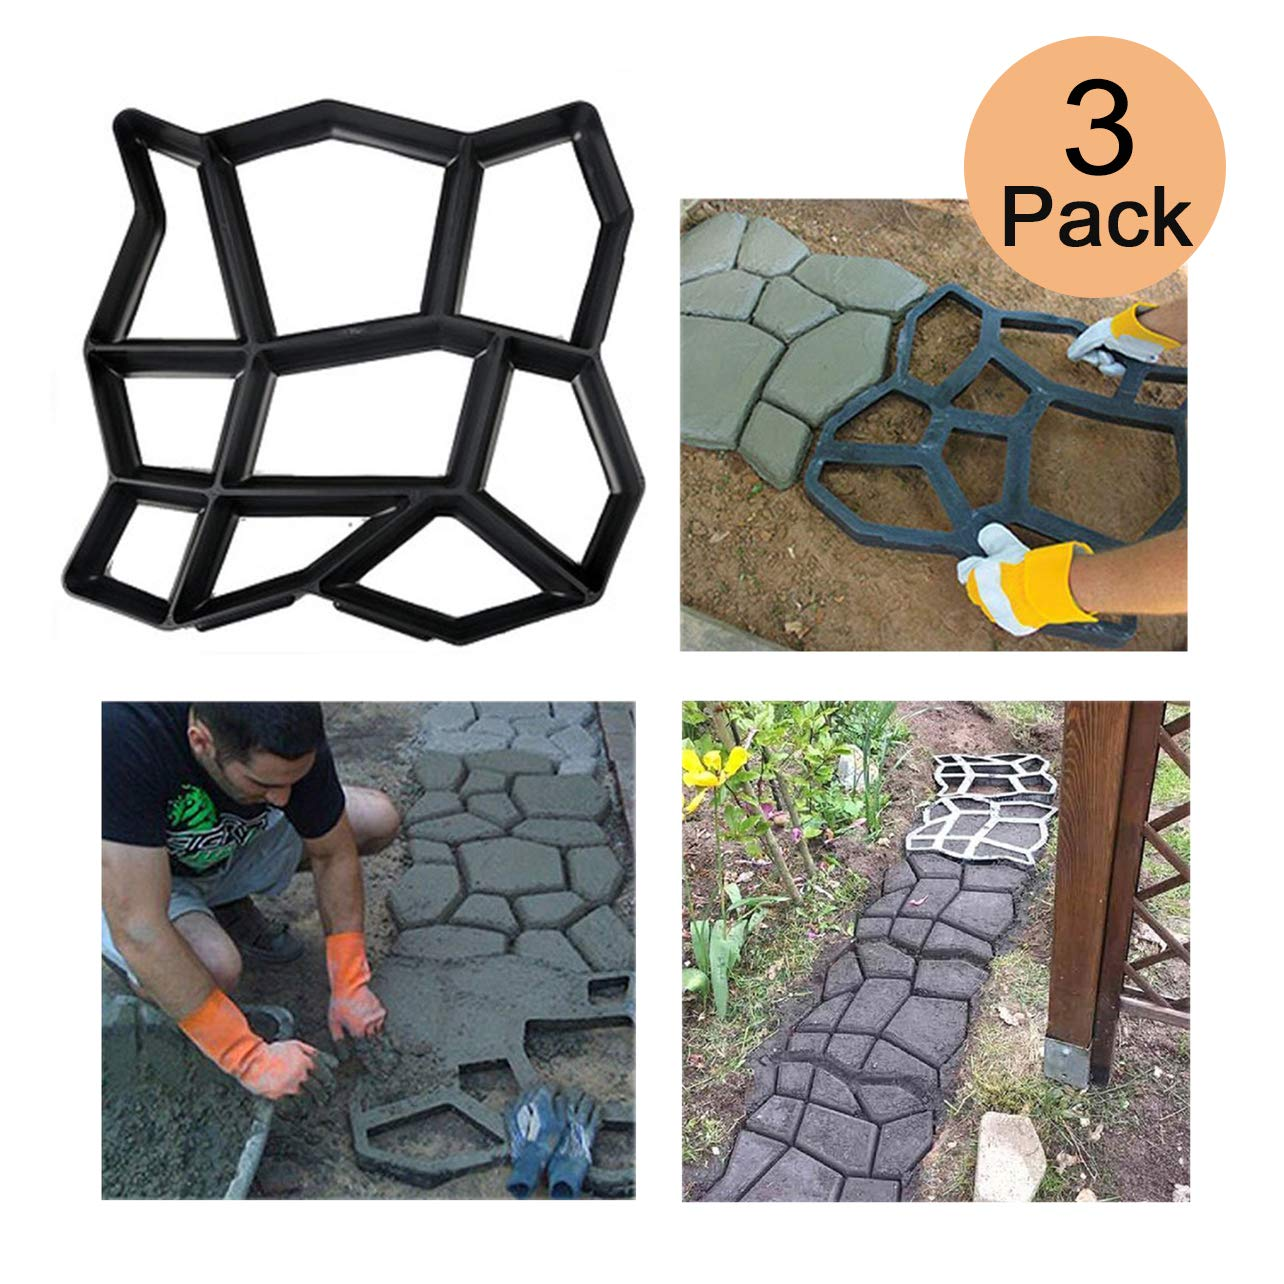 3 Pack Irregular DIY Pavement Mold Walk Maker Path Maker Brick Mold Concrete Form Pathmate Stepping Stone Molds for Concrete Mould Reusable for Garden, Court Yards, Patios and Walks, 16.9 x 16.5in